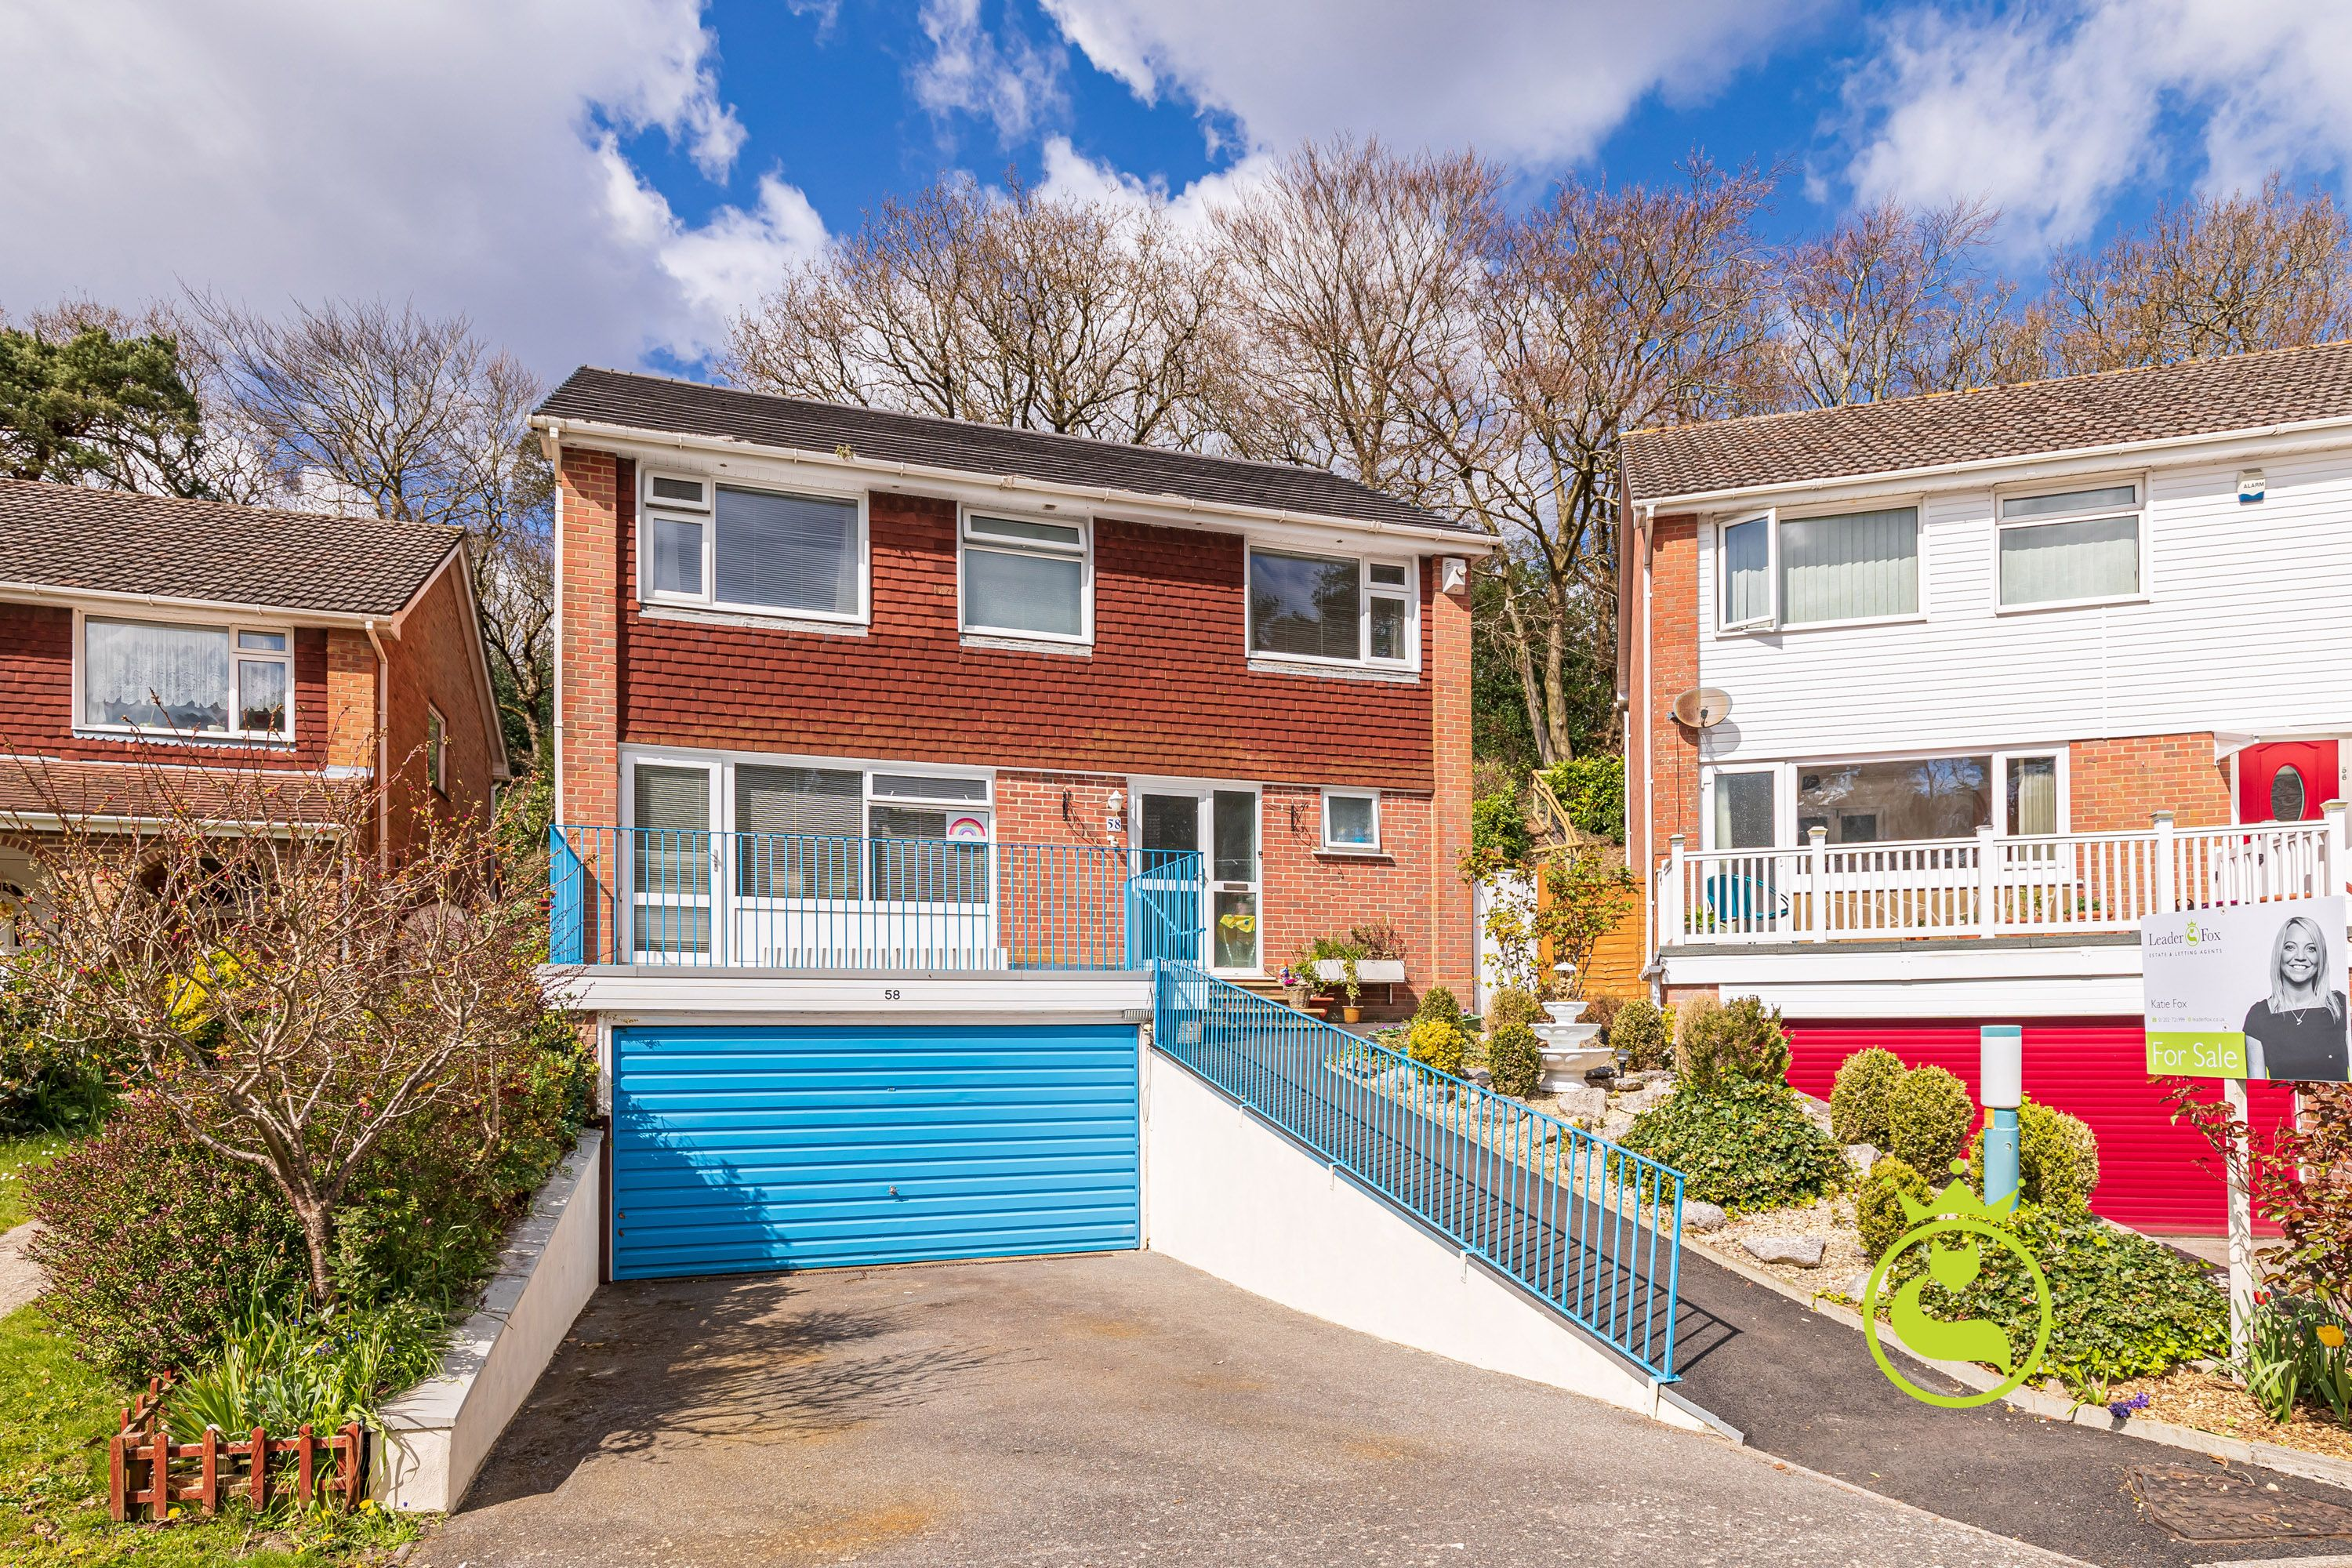 A substantial four bedroom, two bathroom detached family sized home with double garage and far reaching harbour views from the top of the garden. Situated in a quiet popular cul-de-sac location near to local schools, Poole town centre and Ashley Cross.